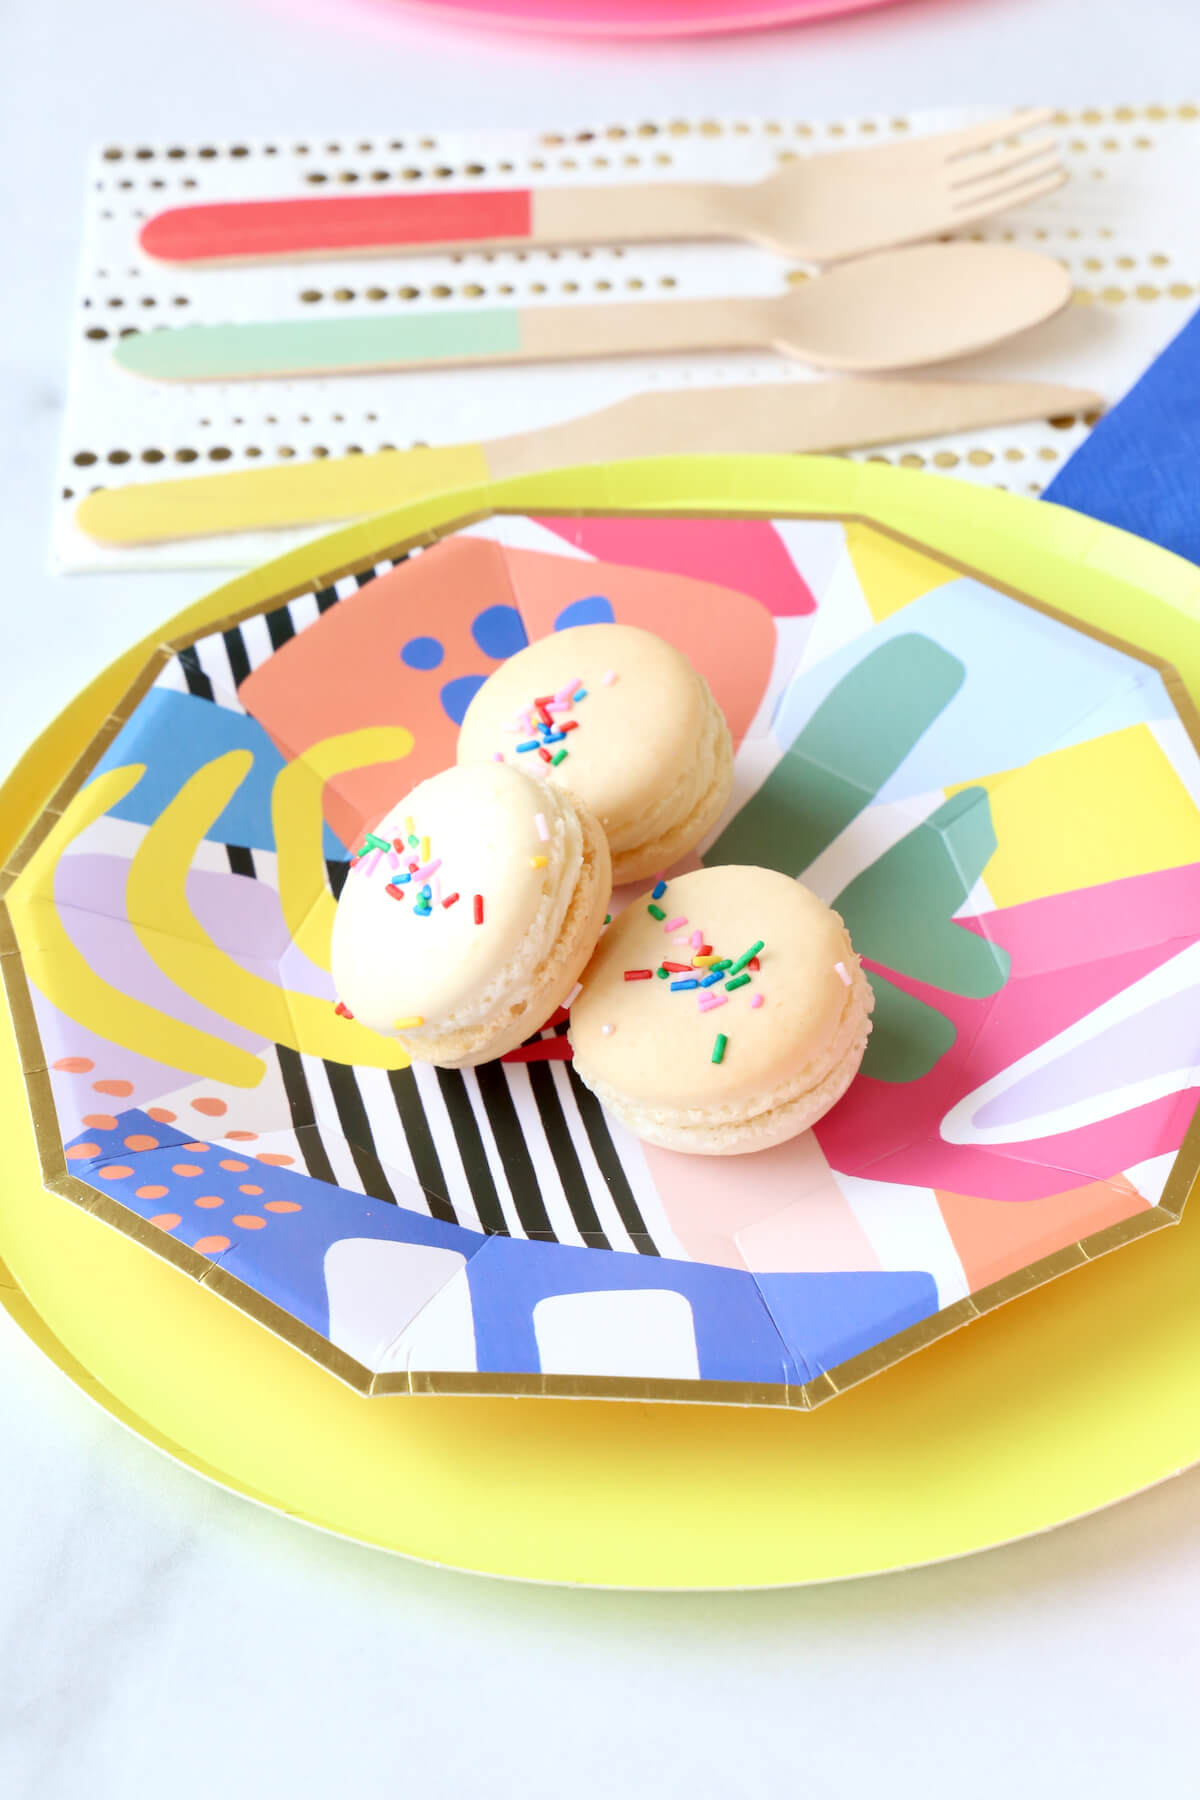 Three french macarons sitting on a colorful birthday paper plate.